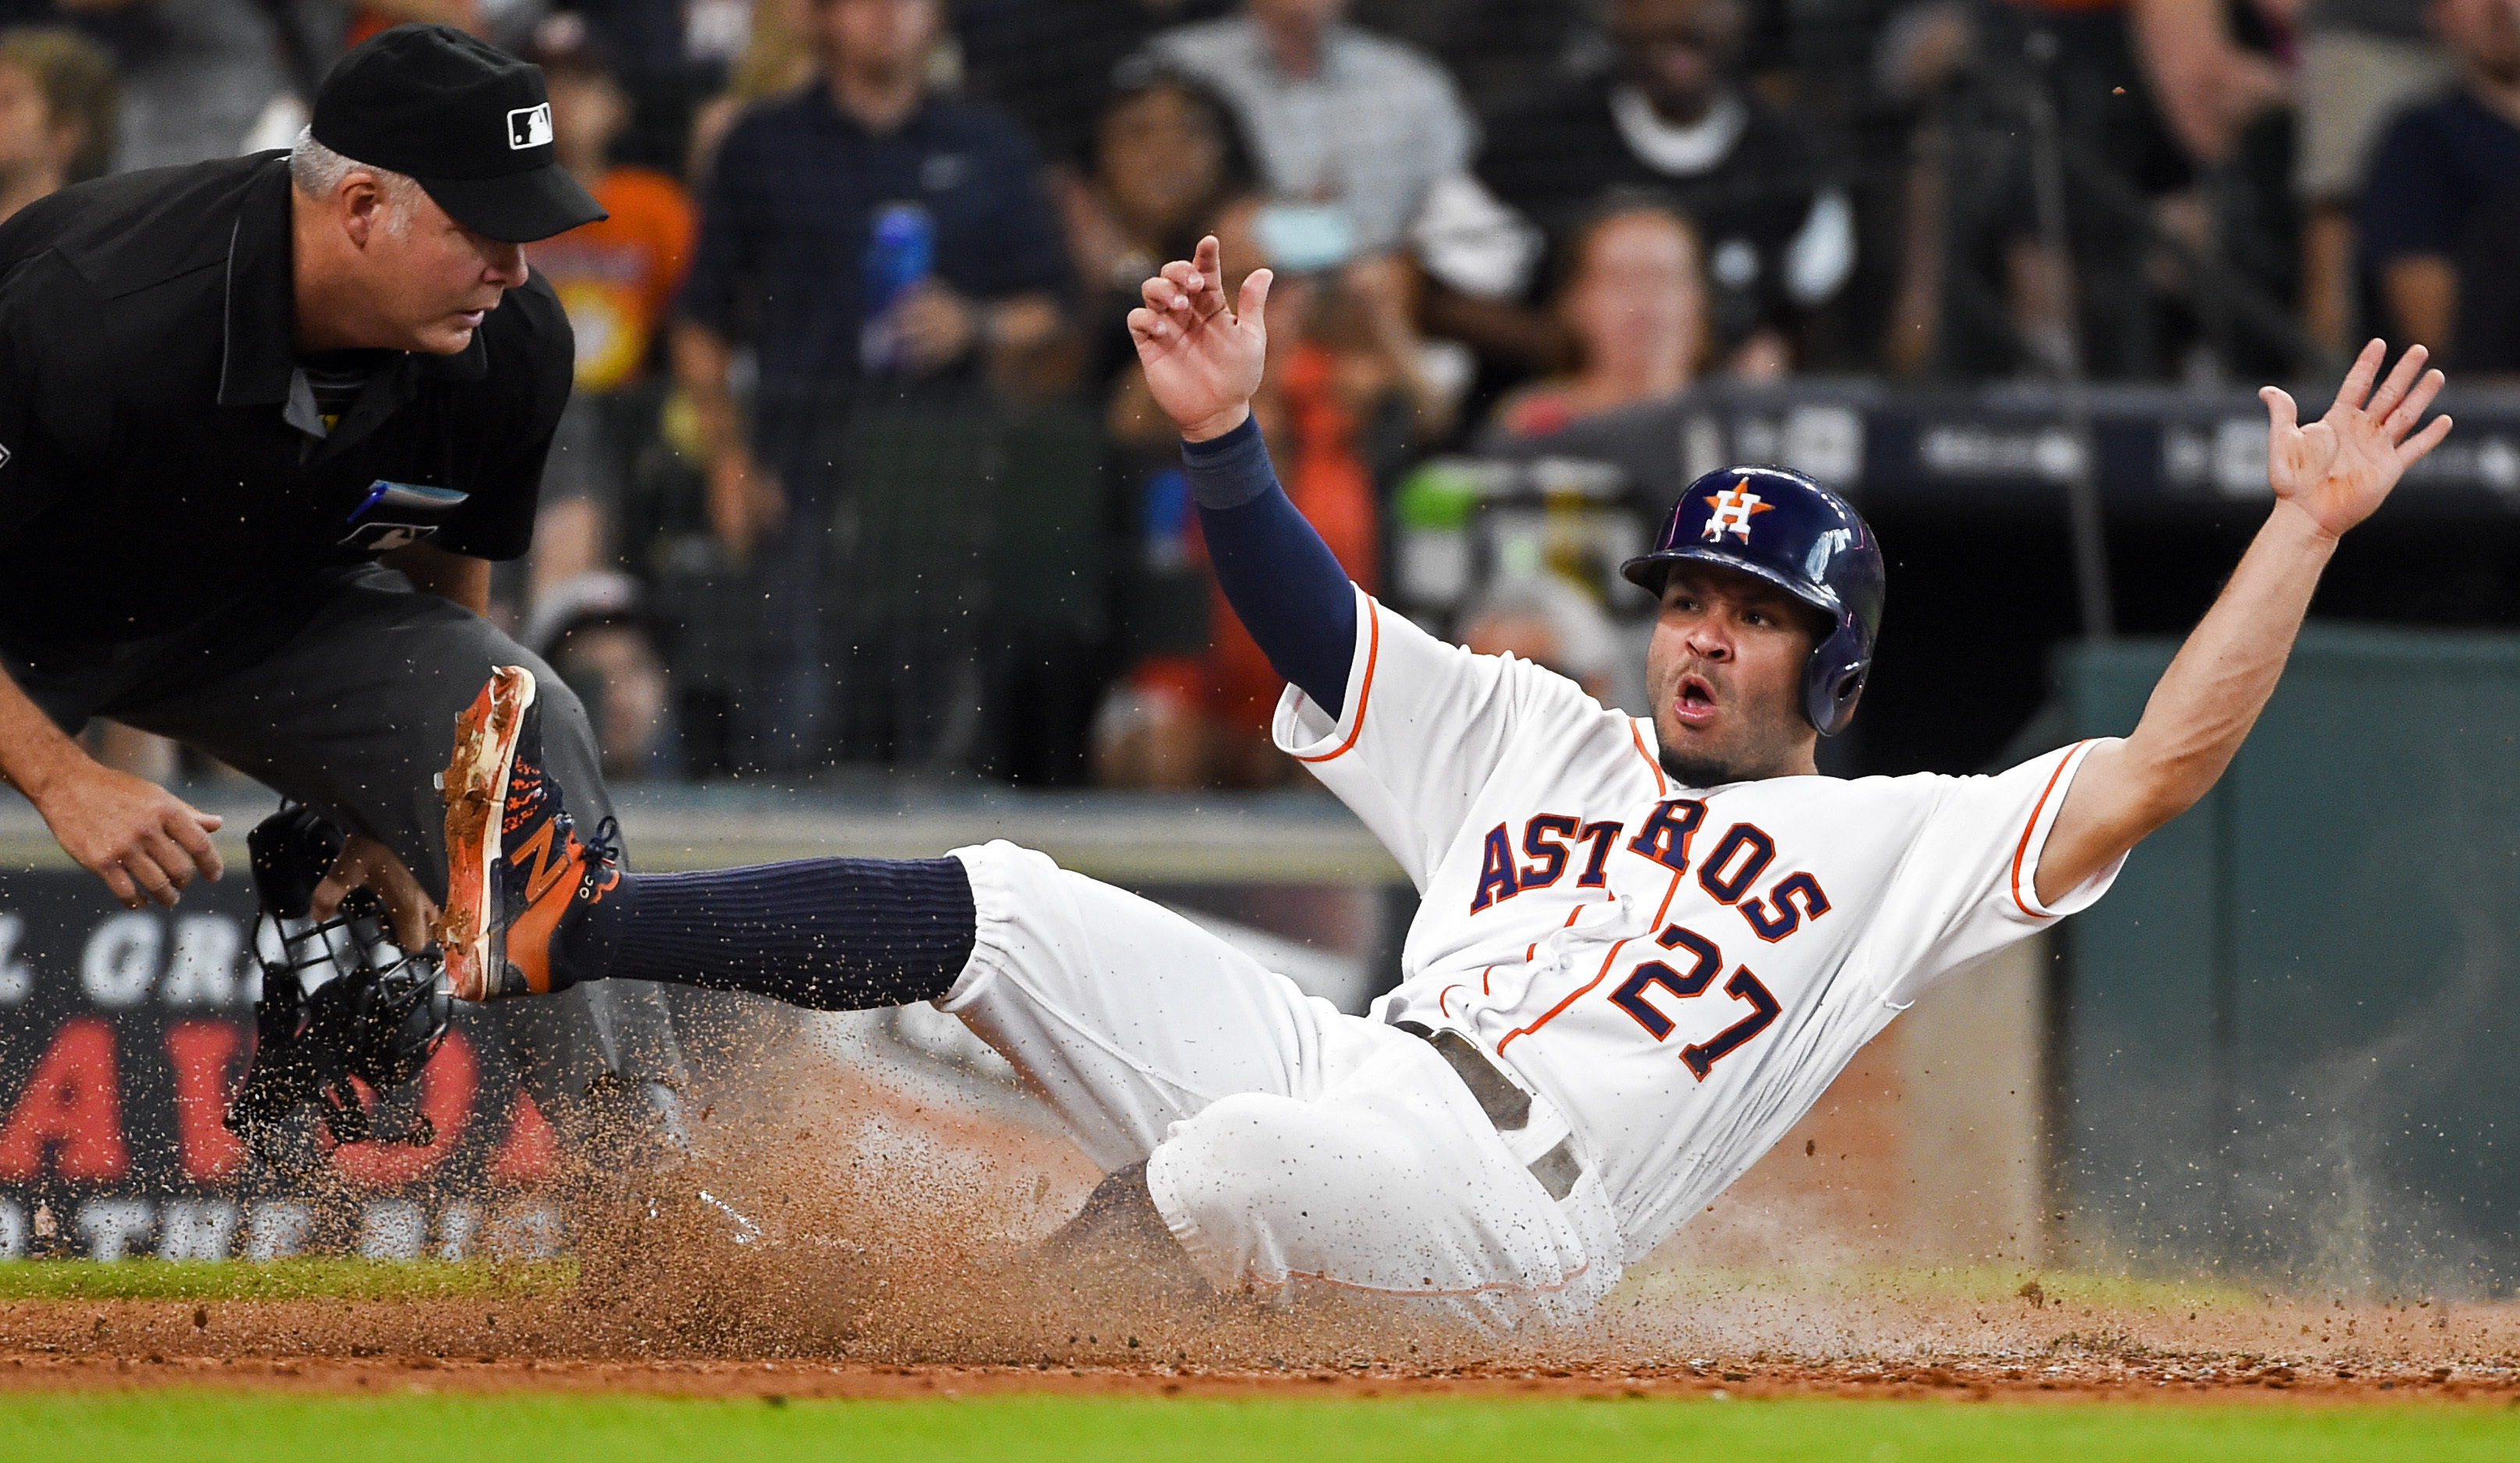 Houston Astros' Jose Altuve (27) slides safely at home to score on Carlos Correa's RBI-single as home plate umpire Tim Timmons looks on in the third inning of a baseball game against the Chicago White Sox, Saturday, July 2, 2016, in Houston. (AP Photo/Eri